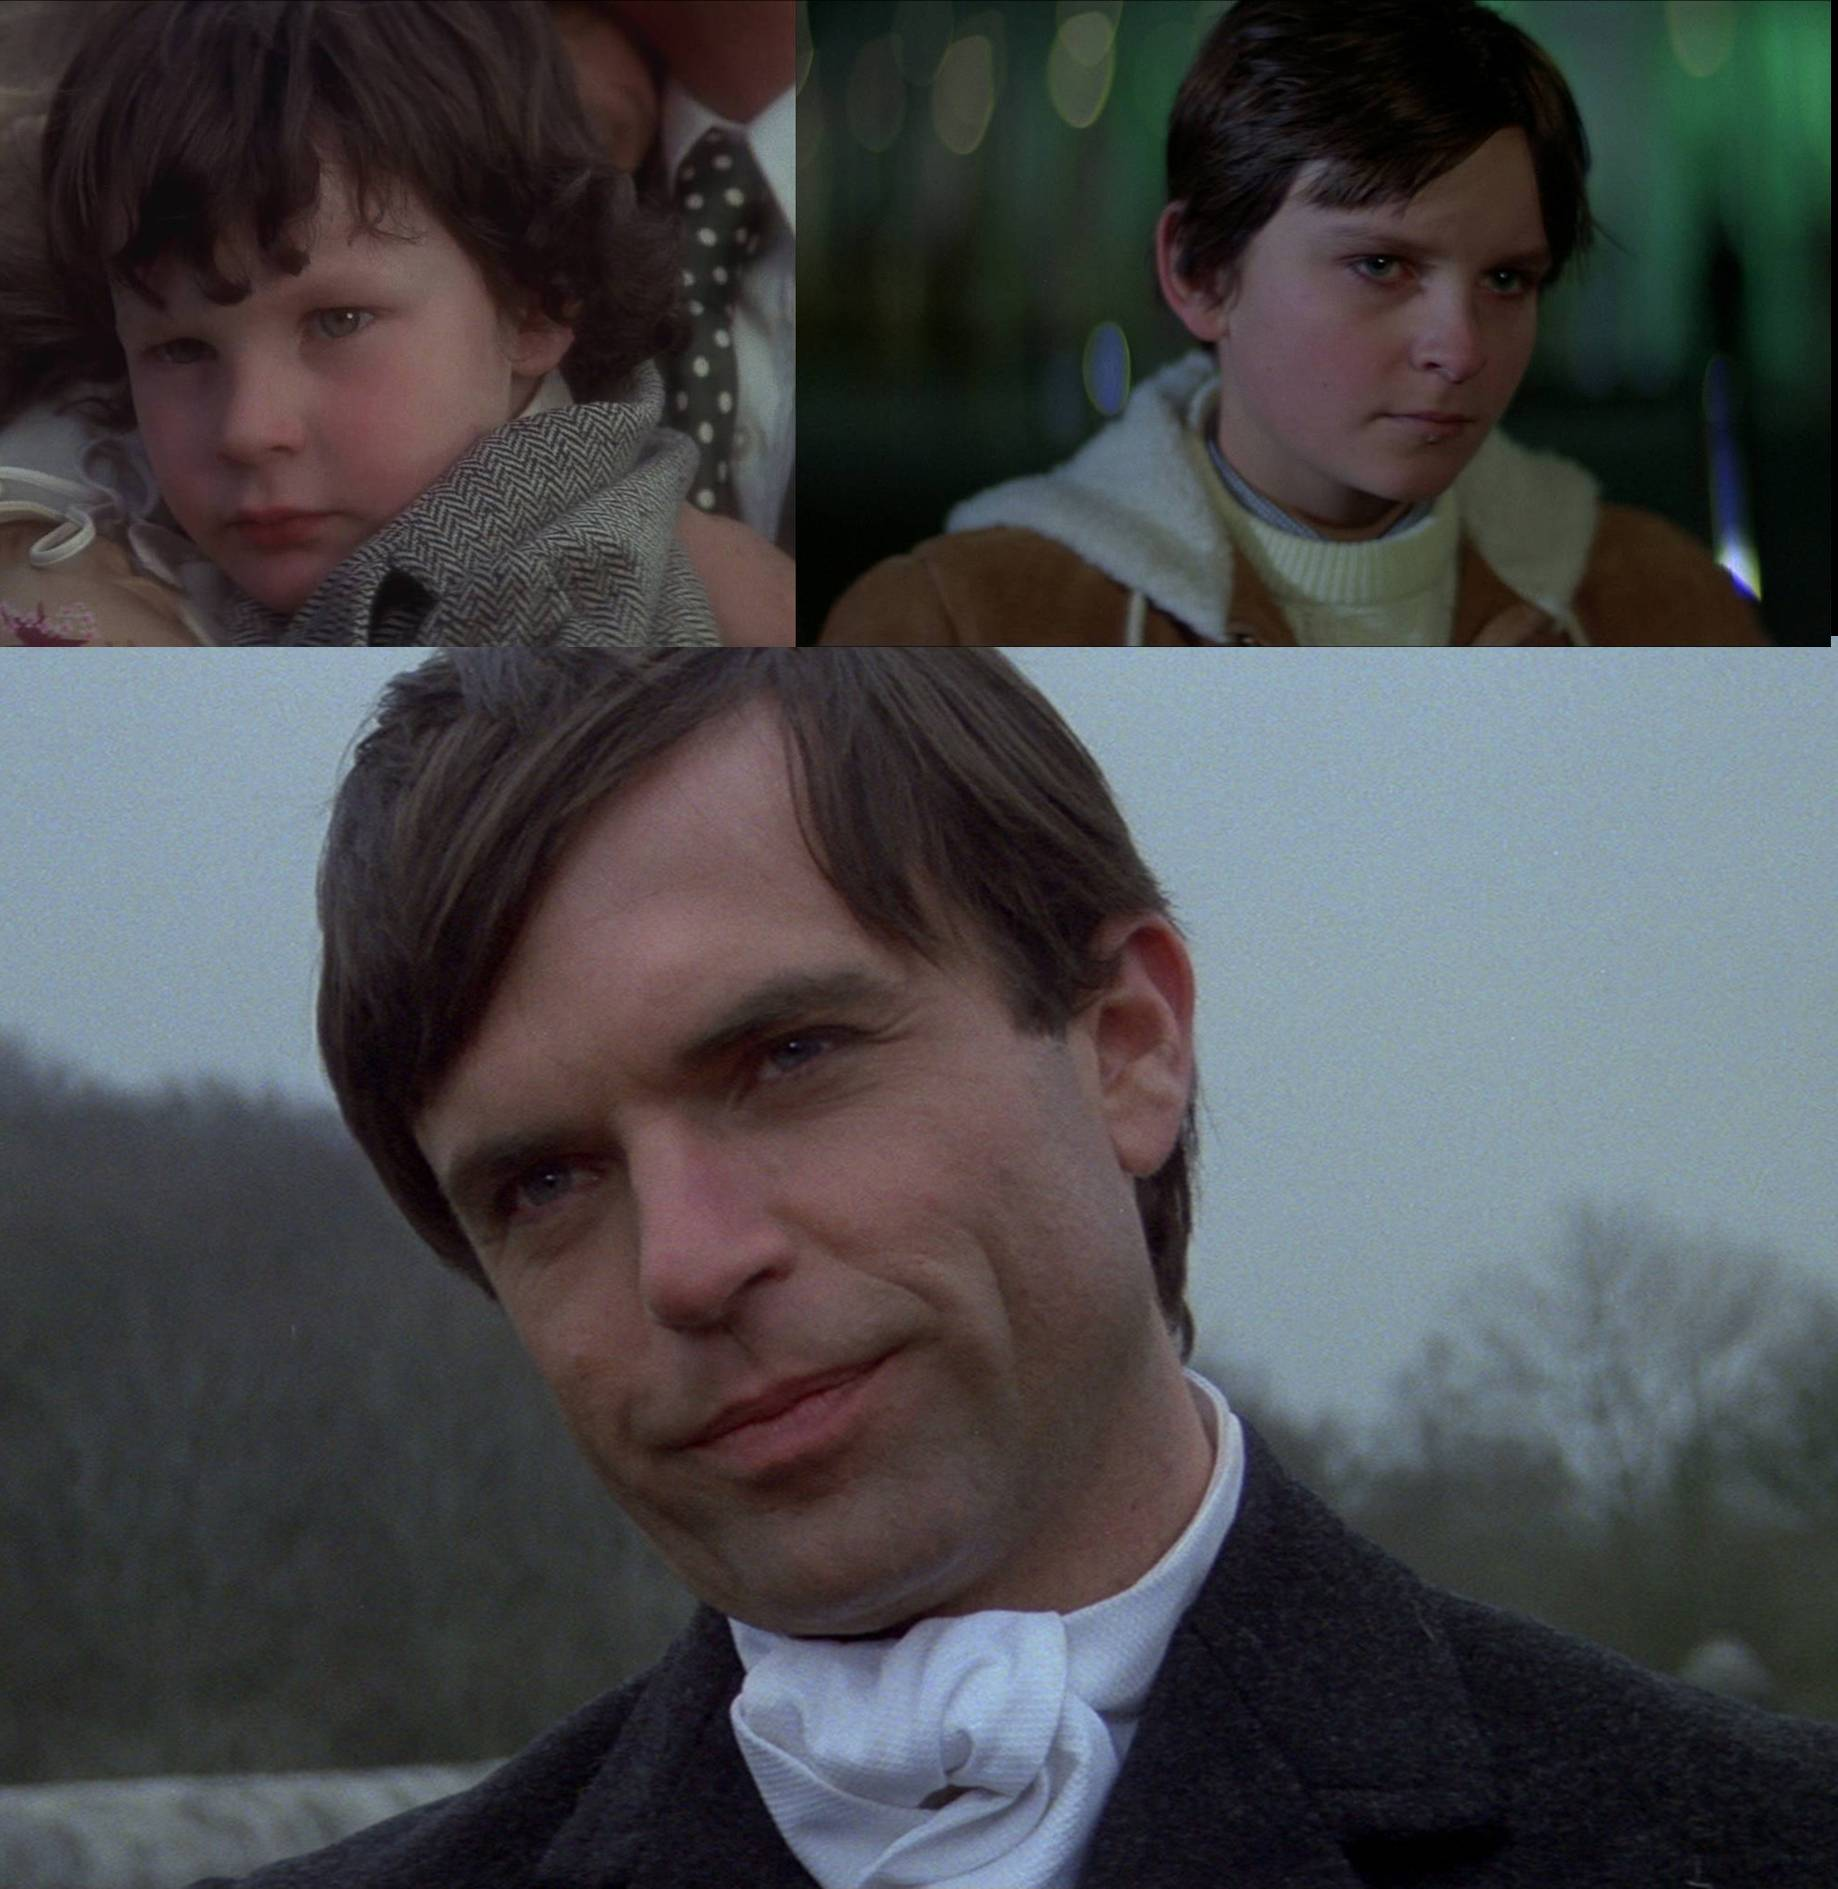 Damien thorn 1976 the omen wiki fandom powered by wikia for Portent vs omen